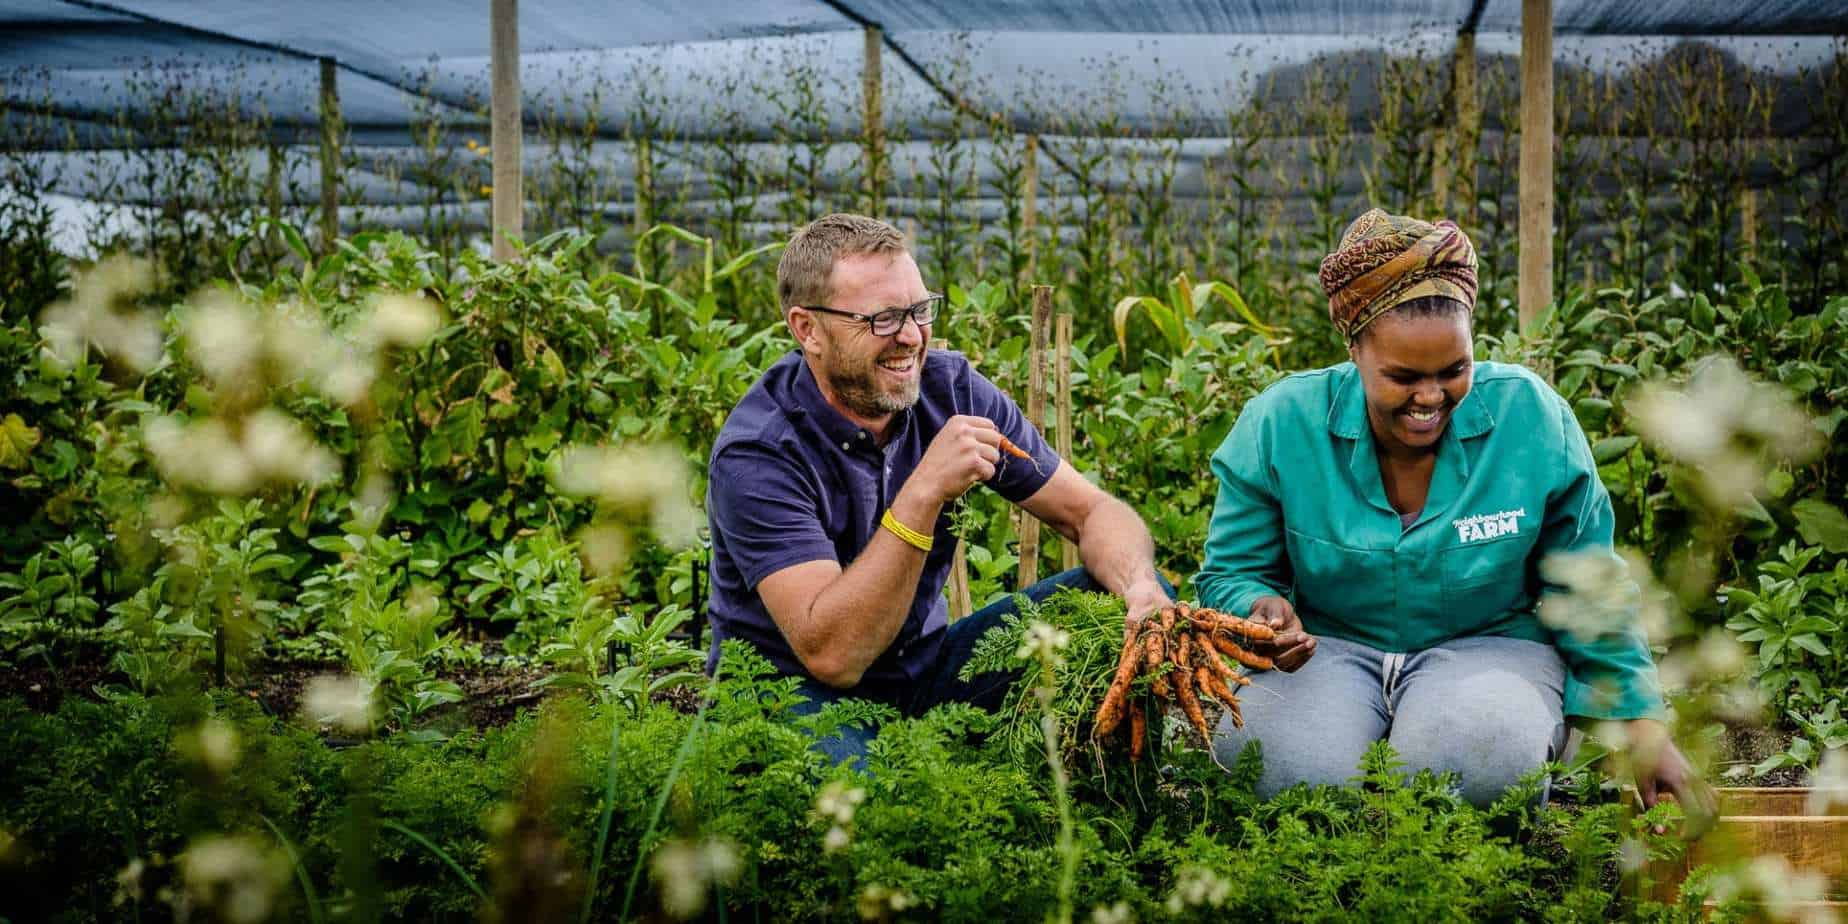 Justin Bonello (right) founded Neighbourhood Farm to